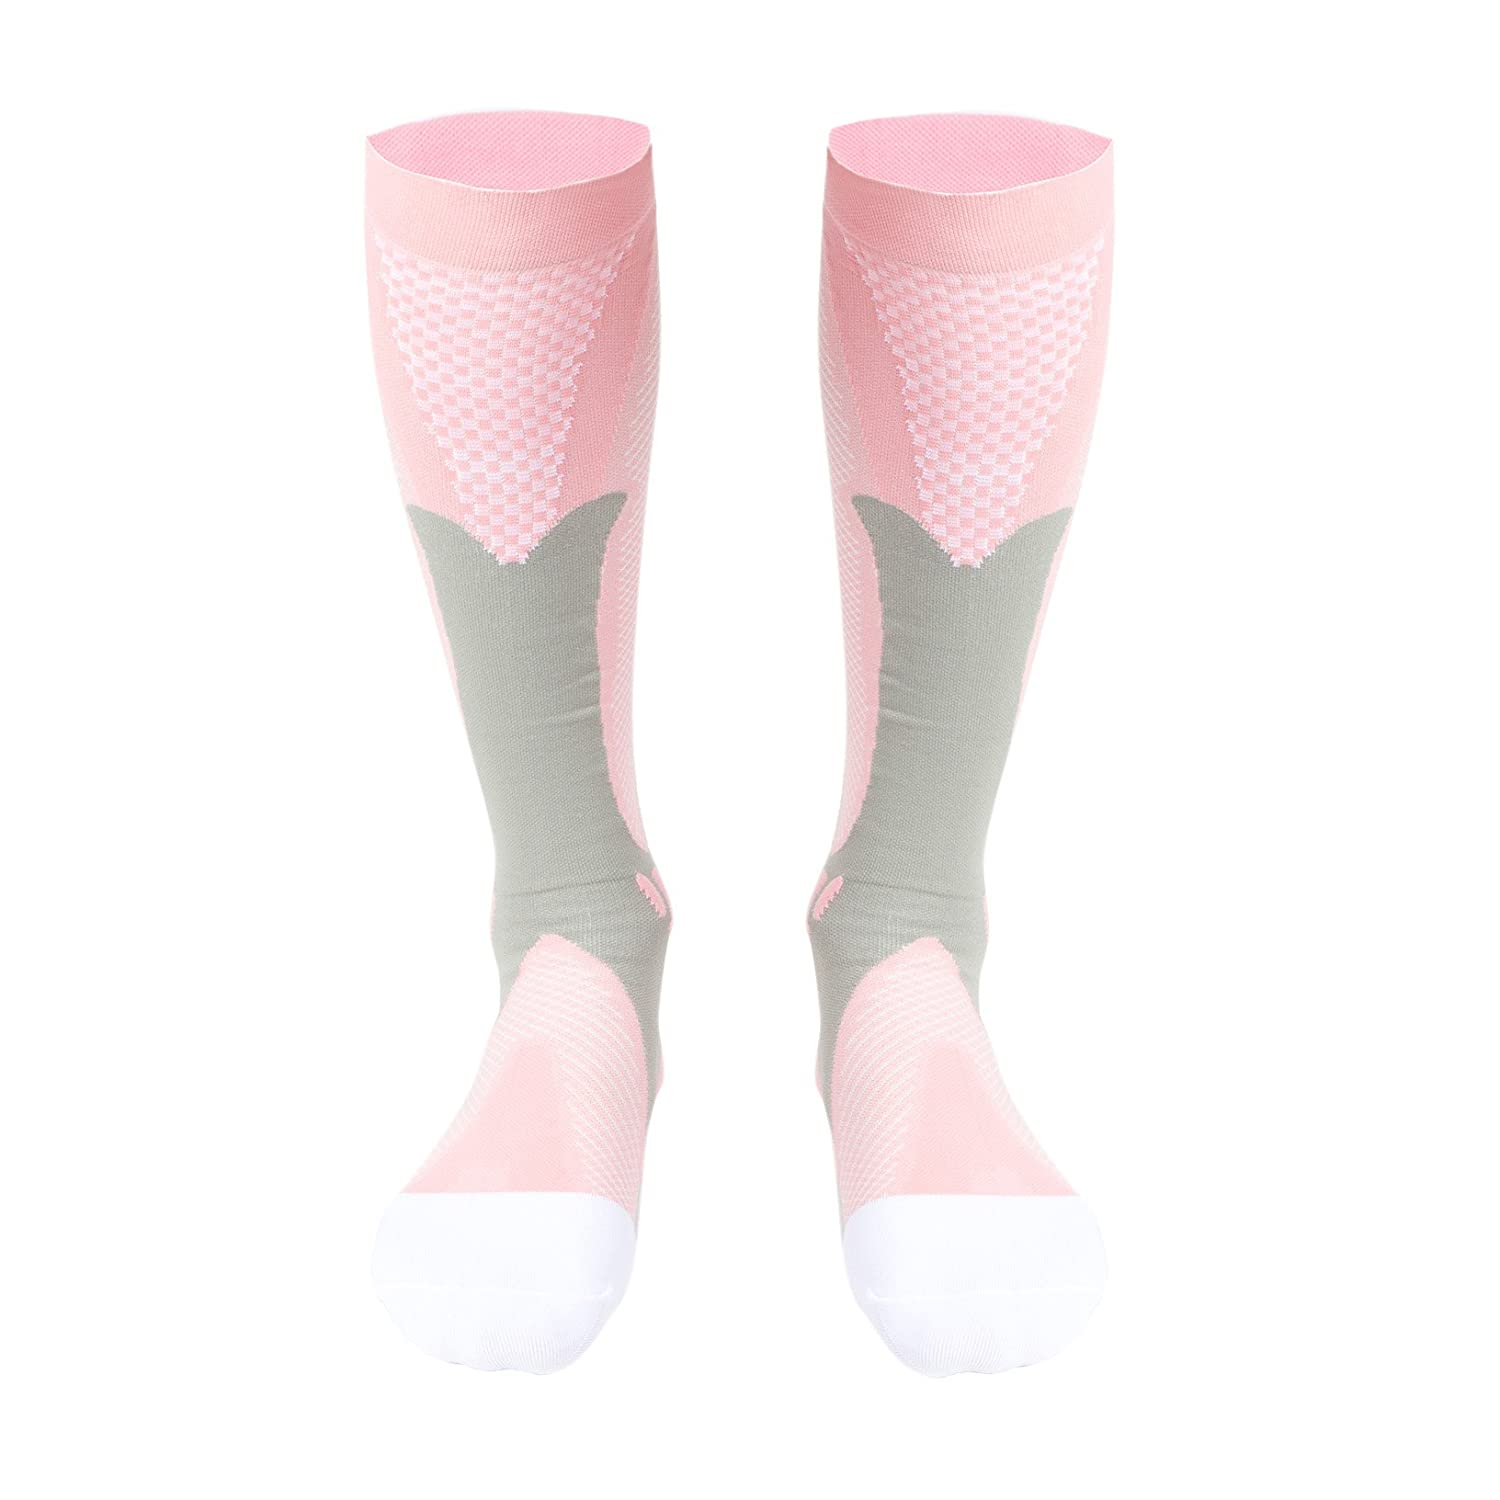 Compression Socks(20-30 mmHg) for Women & Men,Best for Running Athletic Sports Circulation Flight Travel Nurses & Recovery - 1 Pair SLTY